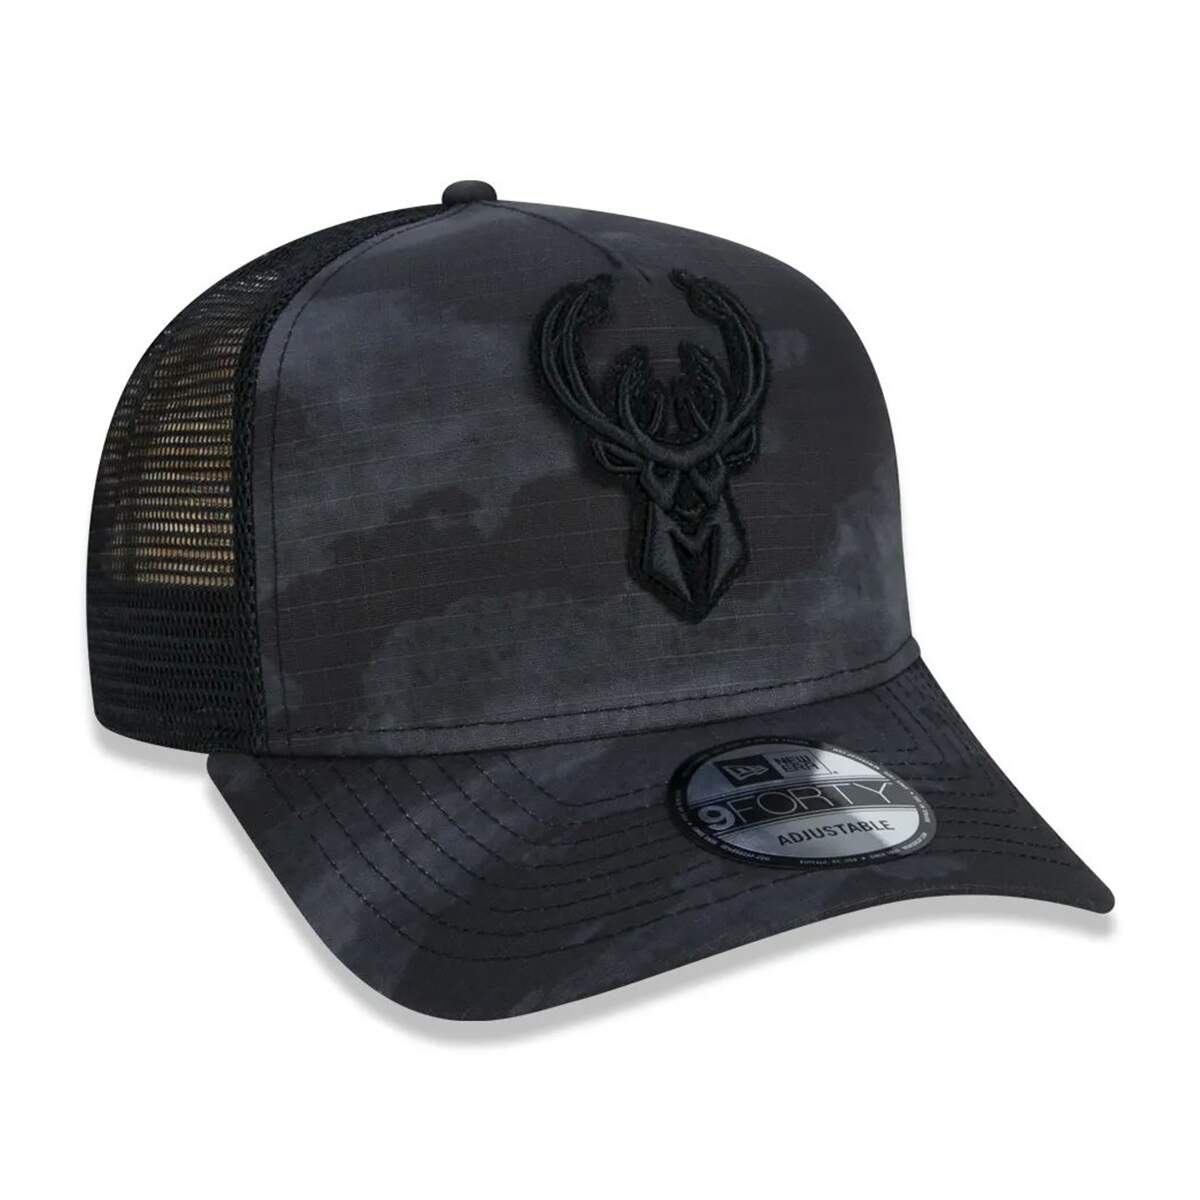 Boné New Era Strapback Milwaukee Bucks NBA Camuflado Preto